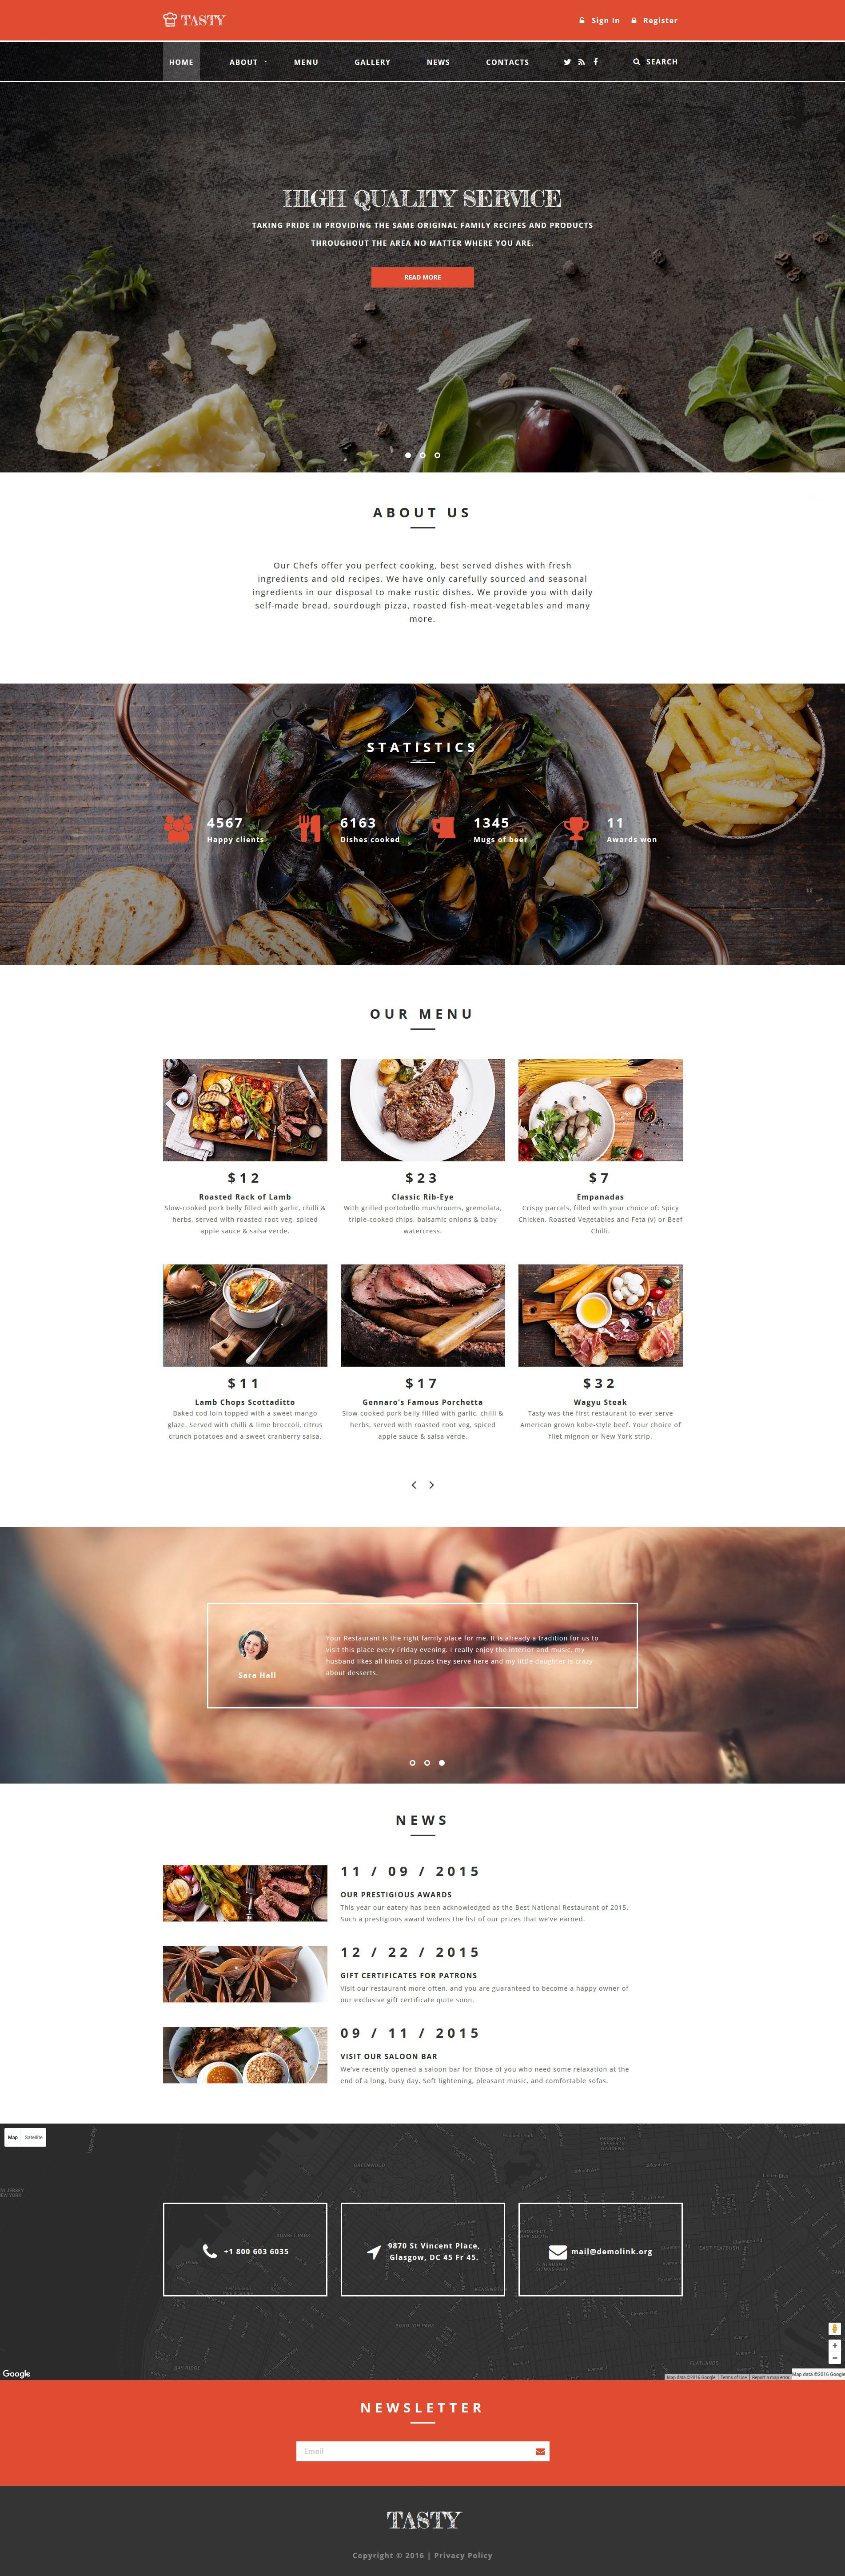 Tasty Cafe And Restaurant Website Template Cafes Template And